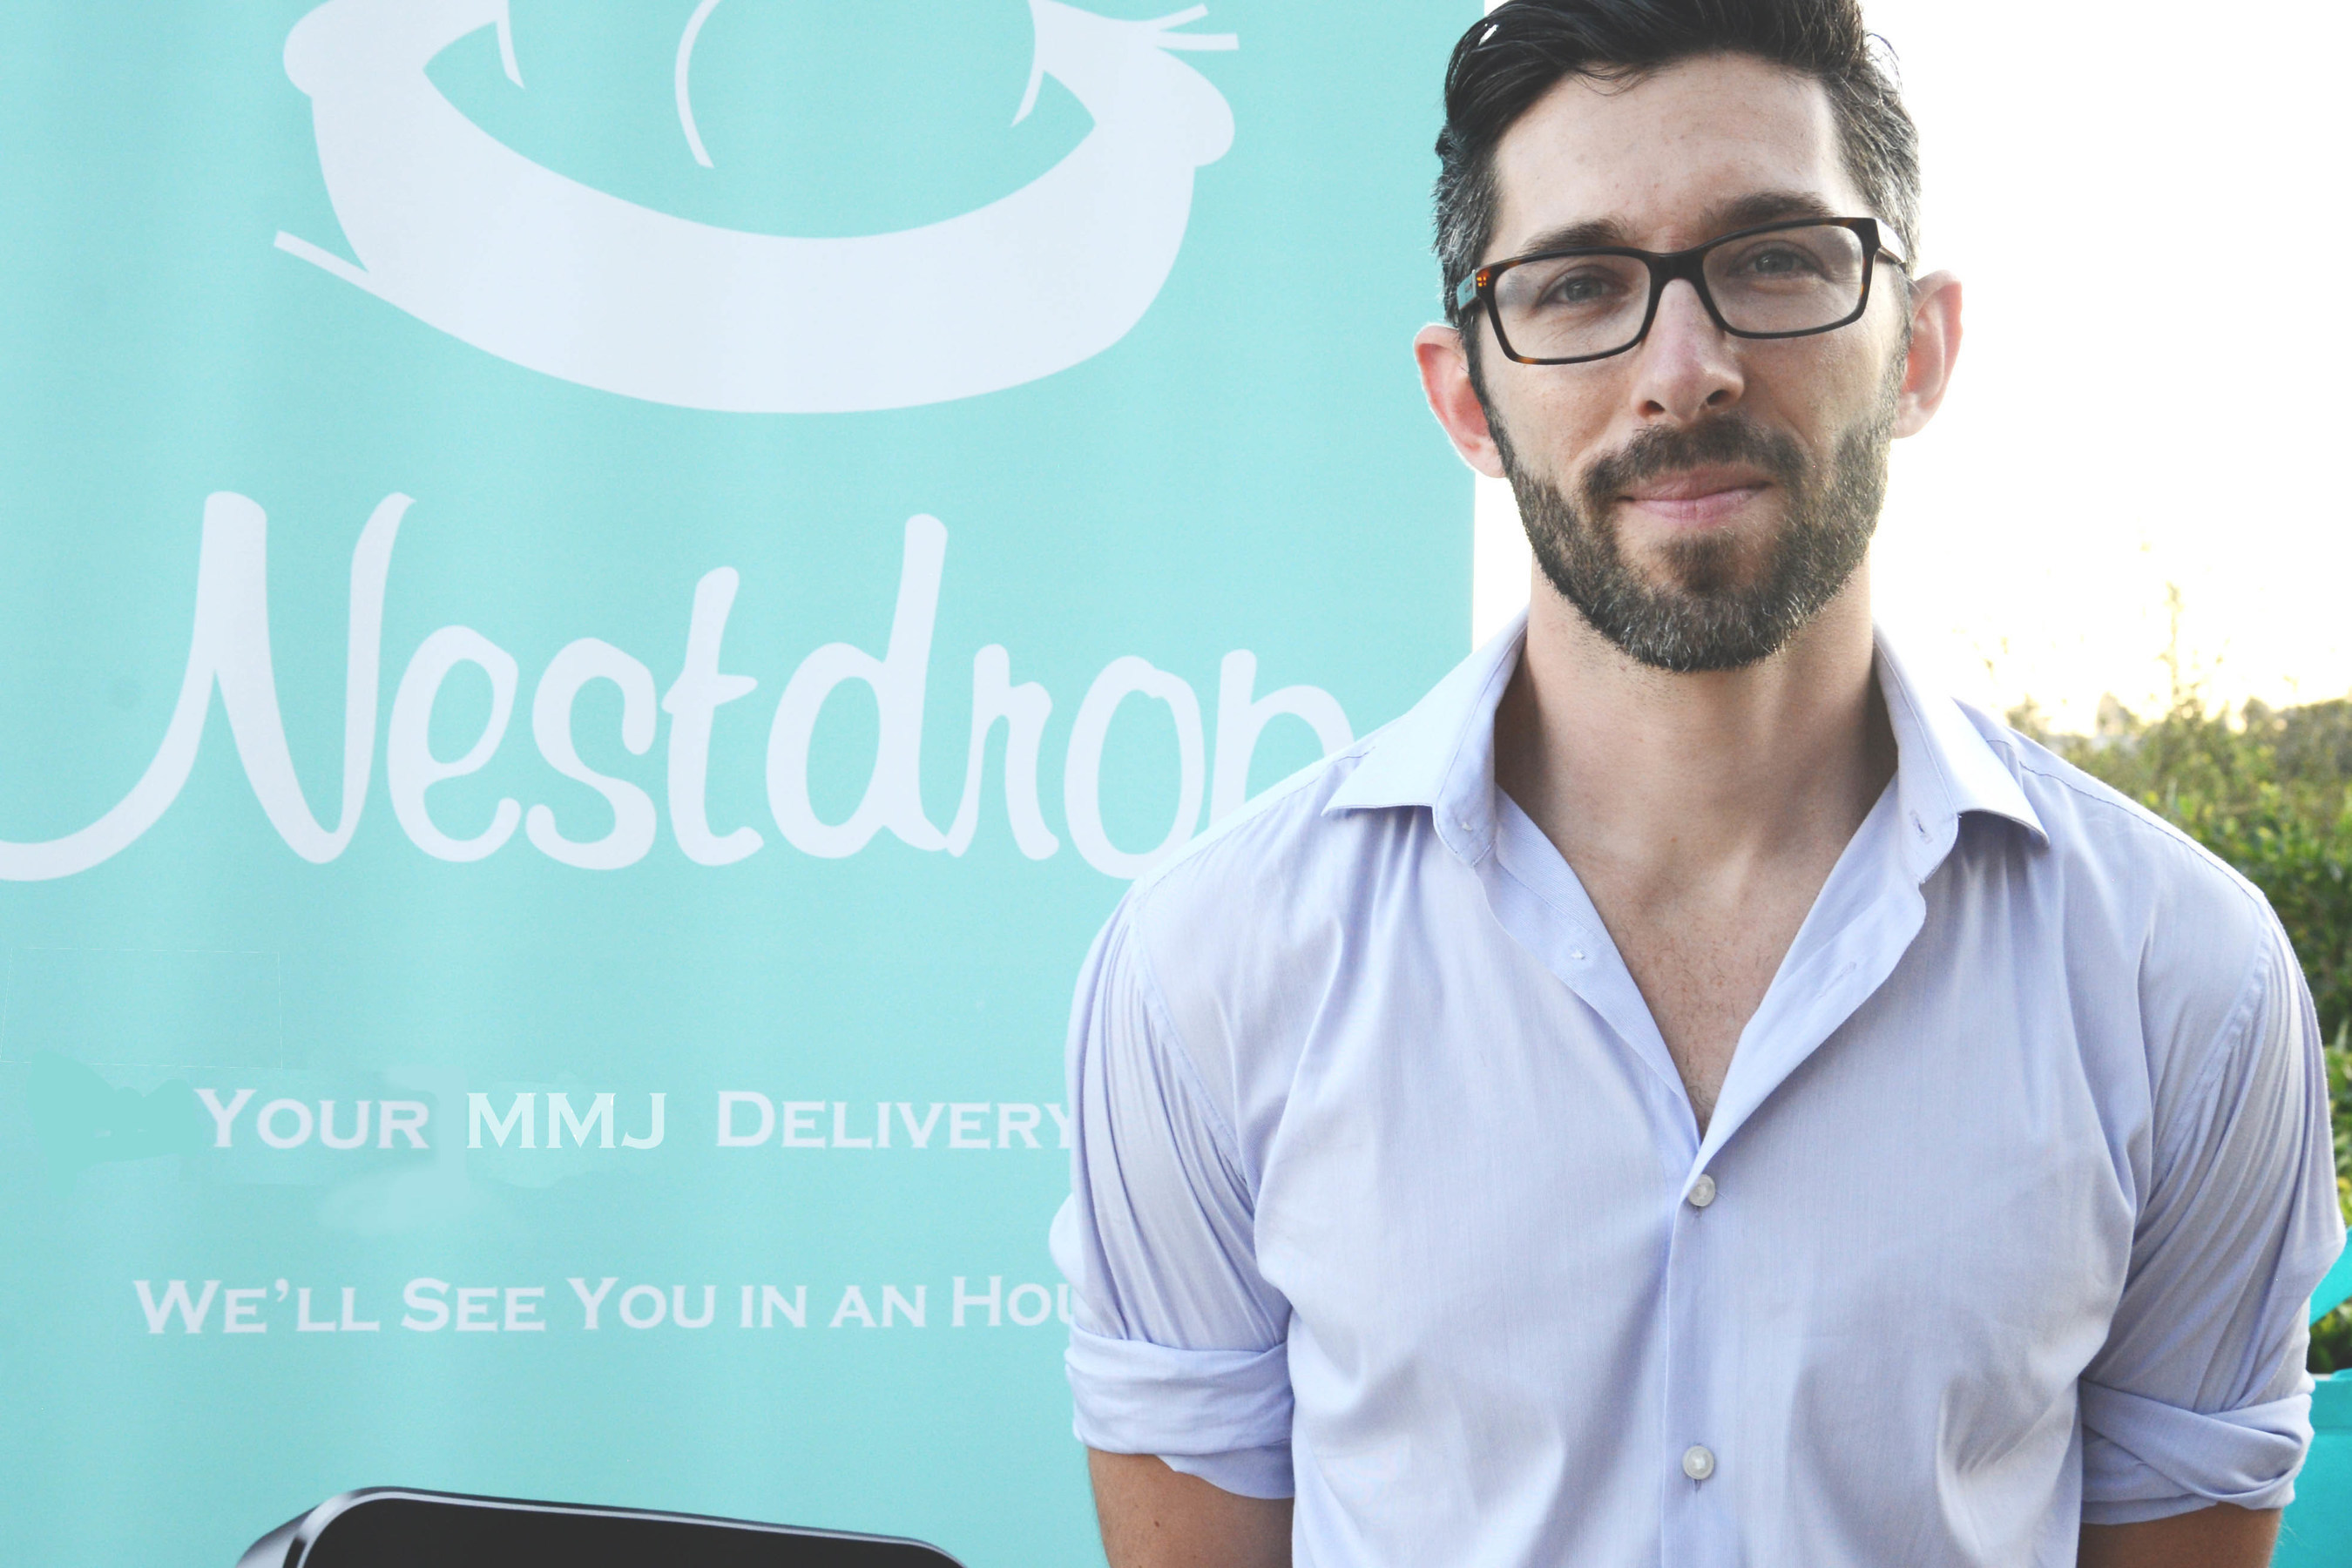 Nestdrop launches GoFundMe campaign to help fund legal costs